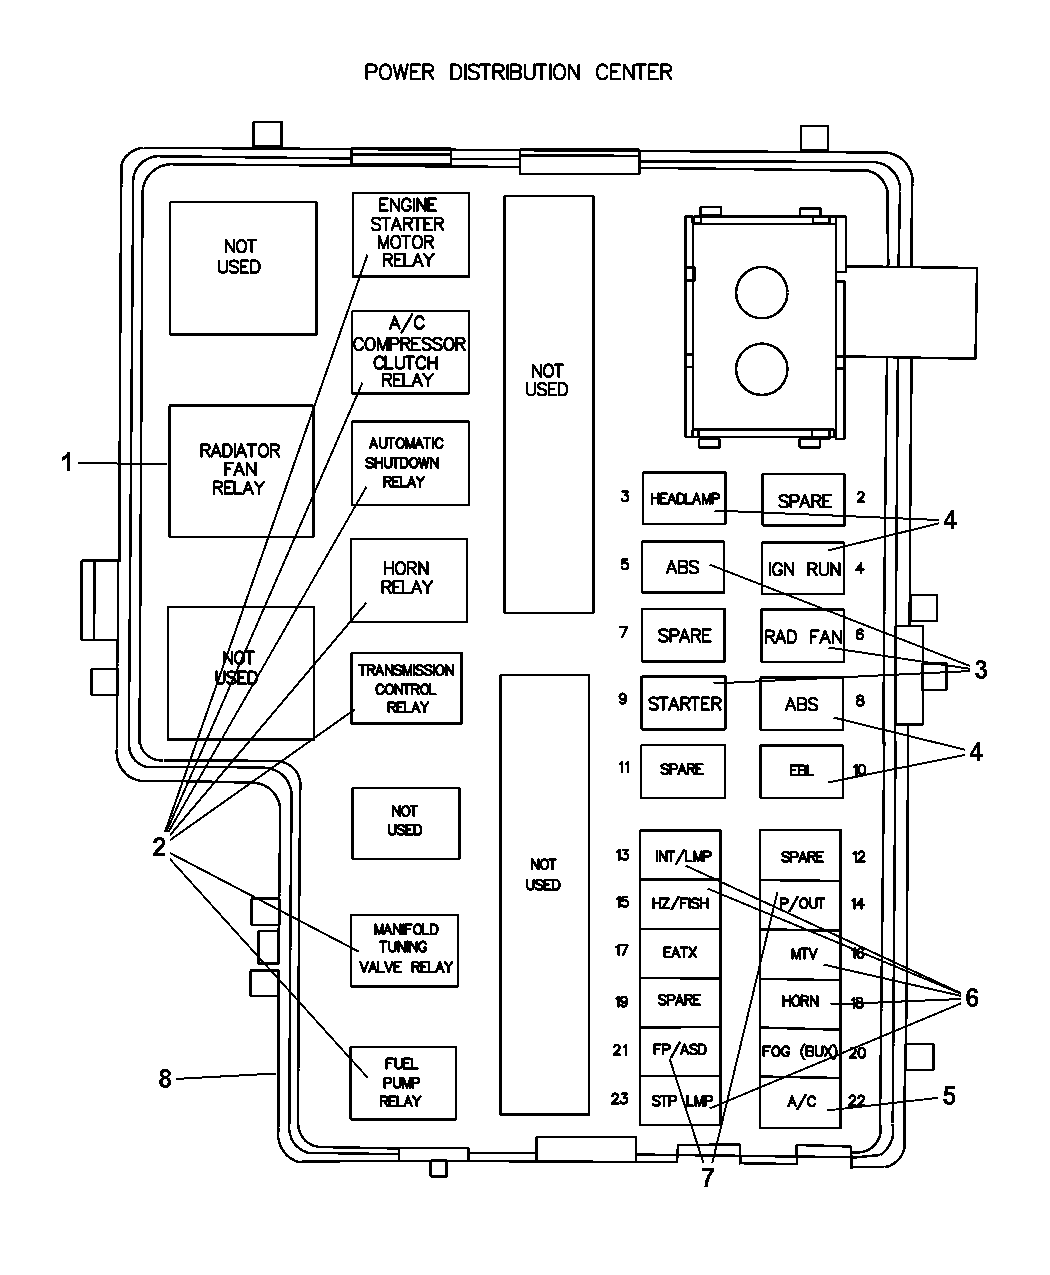 2005 Dodge Neon Fuse Box - Wiring Diagrams Place